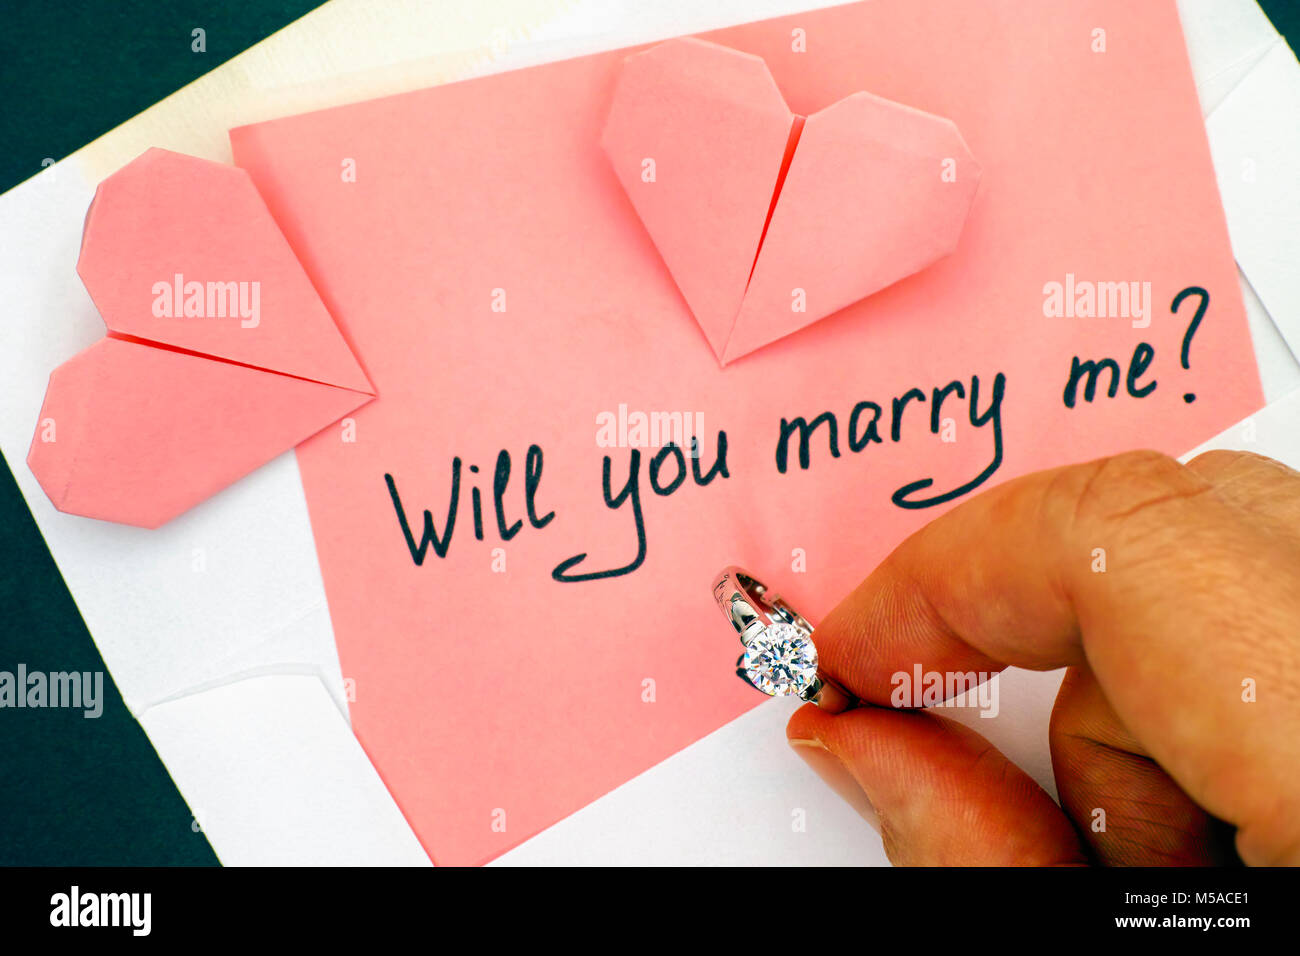 Ring Mail Stock Photos & Ring Mail Stock Images - Alamy